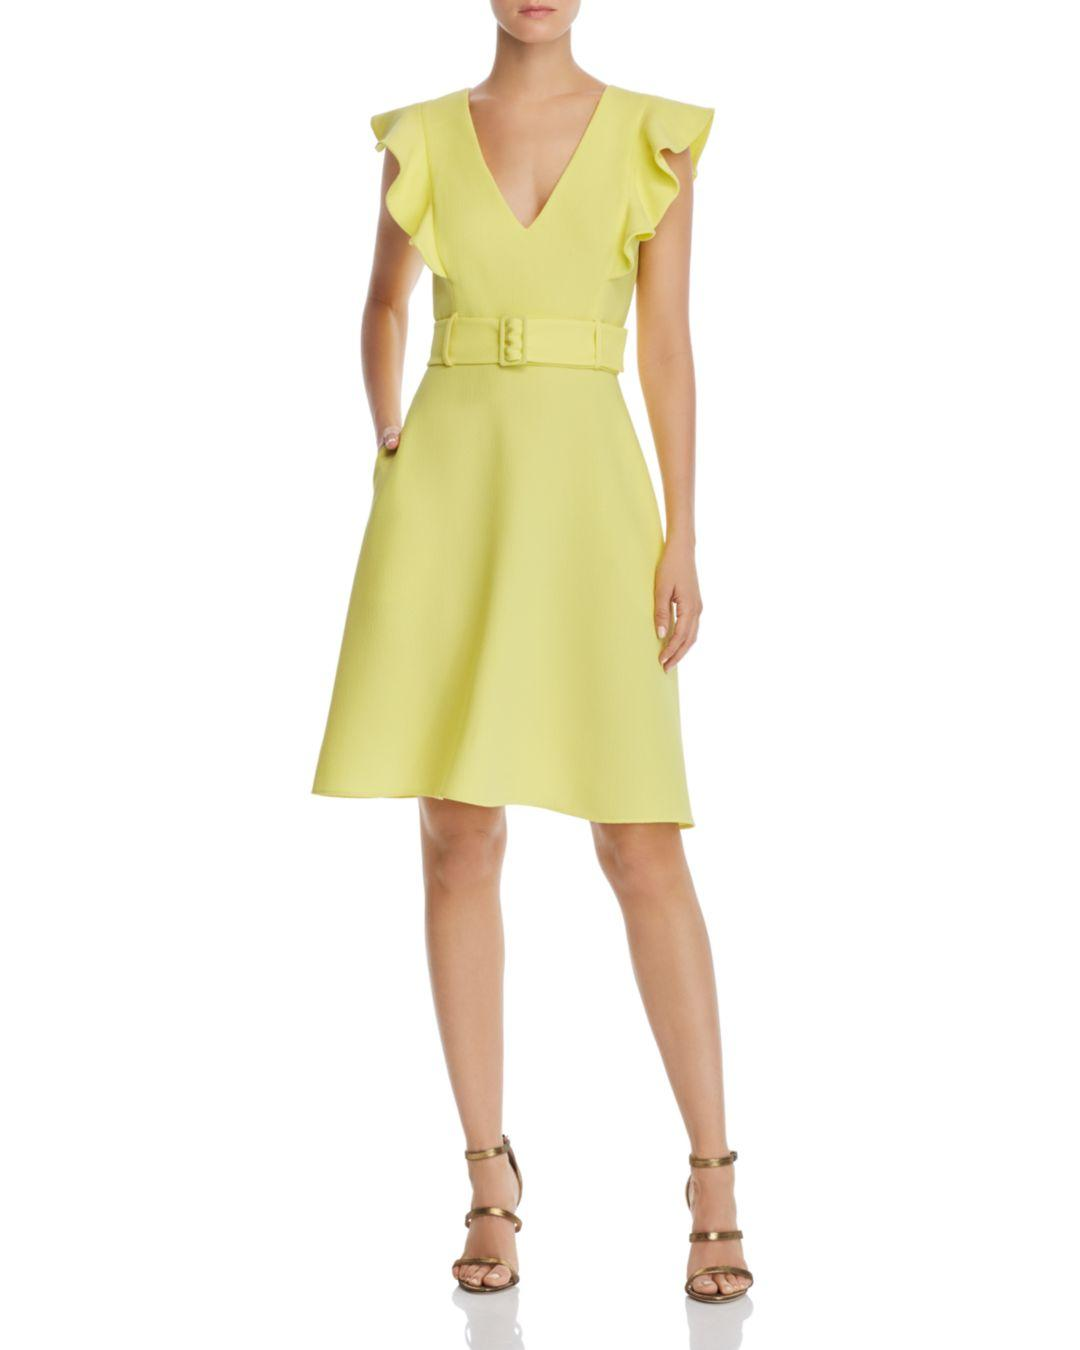 956bd656 Lyst - Black Halo Hailey Belted Dress in Yellow